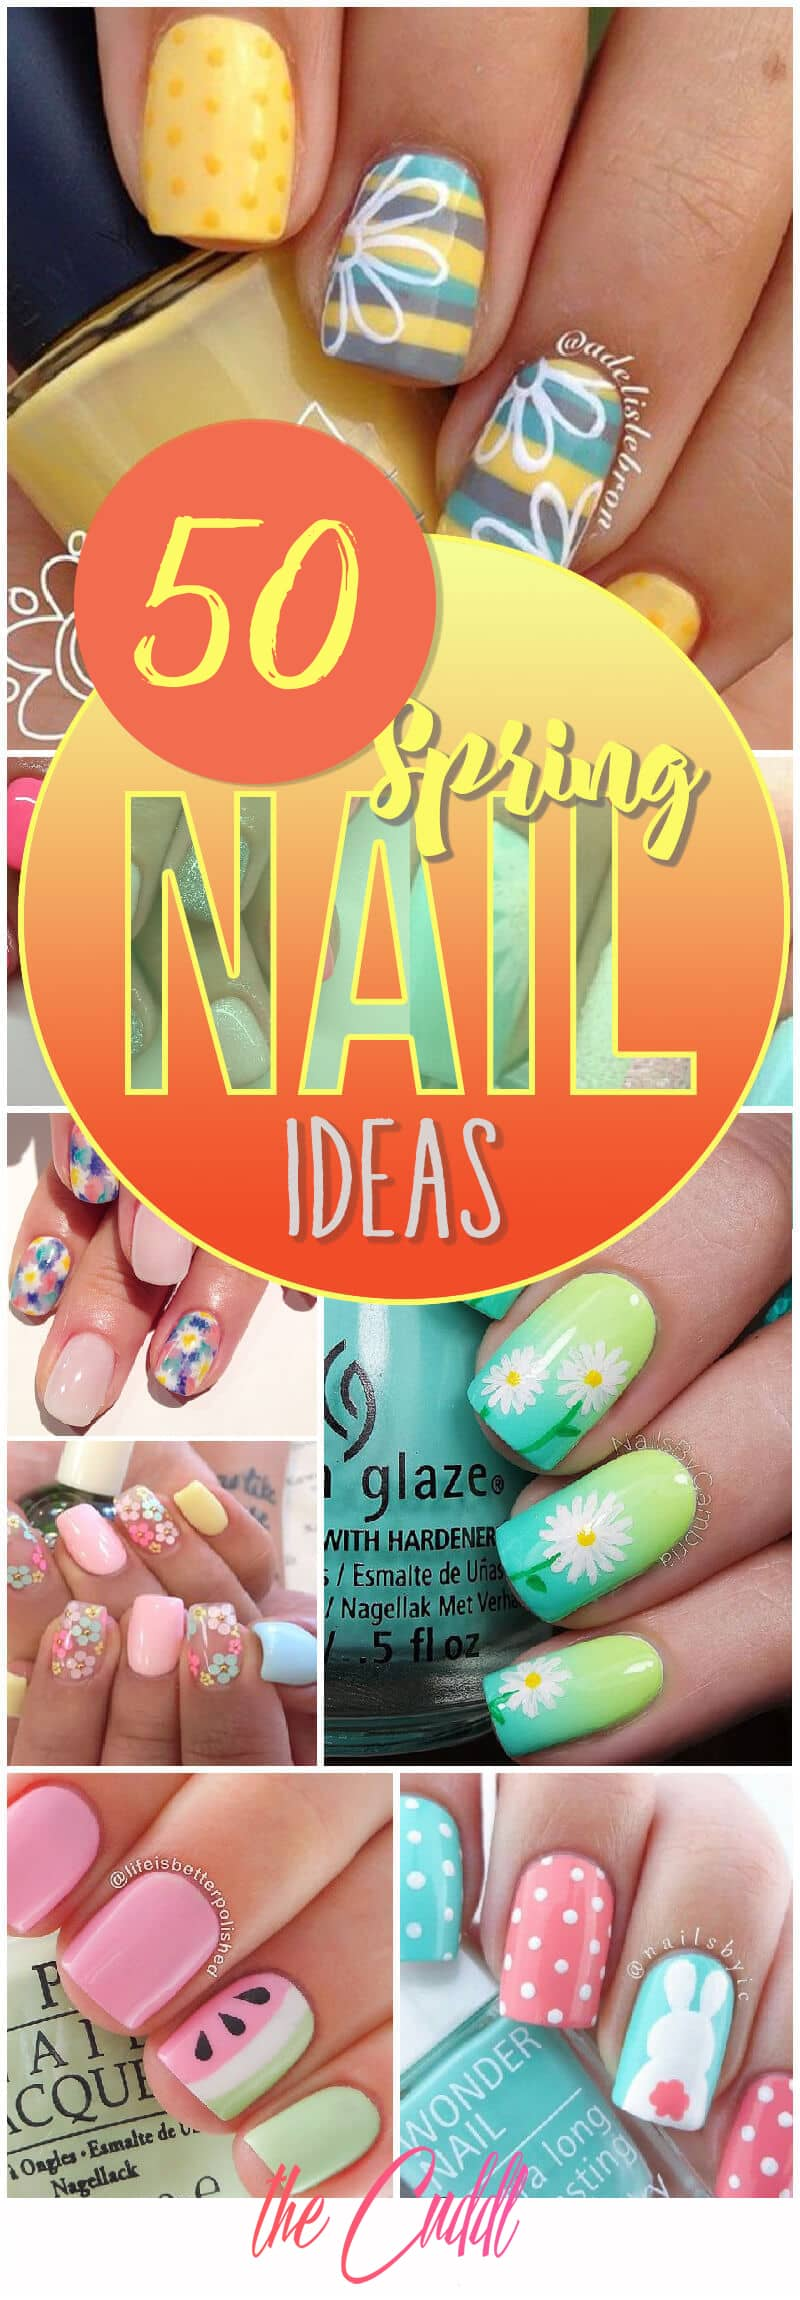 50 Beautiful nail ideas for the spring time!